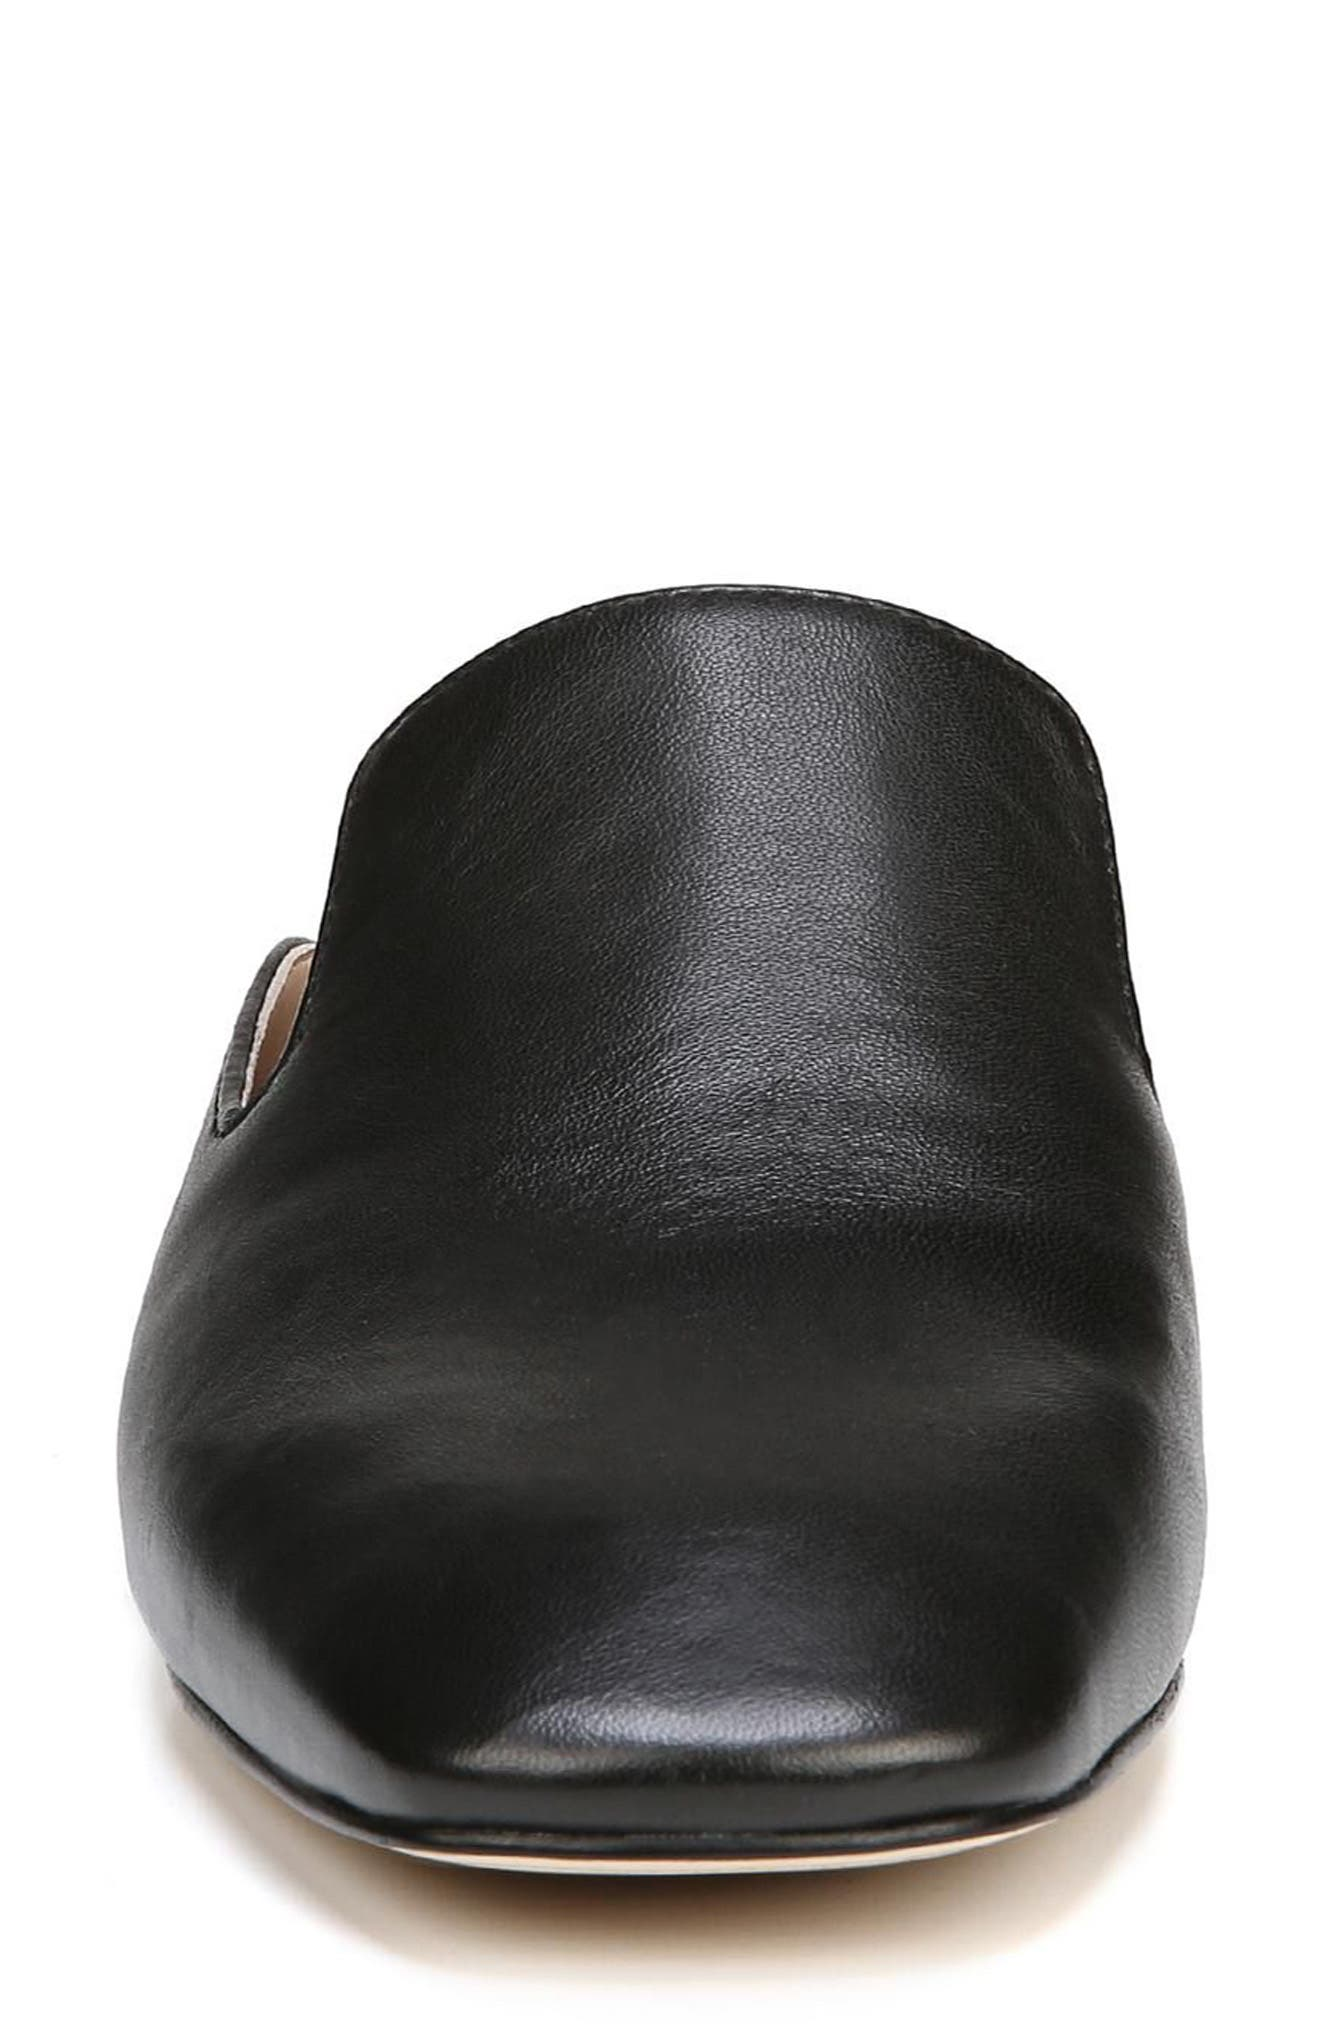 Adair Loafer Mule,                             Alternate thumbnail 4, color,                             BLACK LEATHER